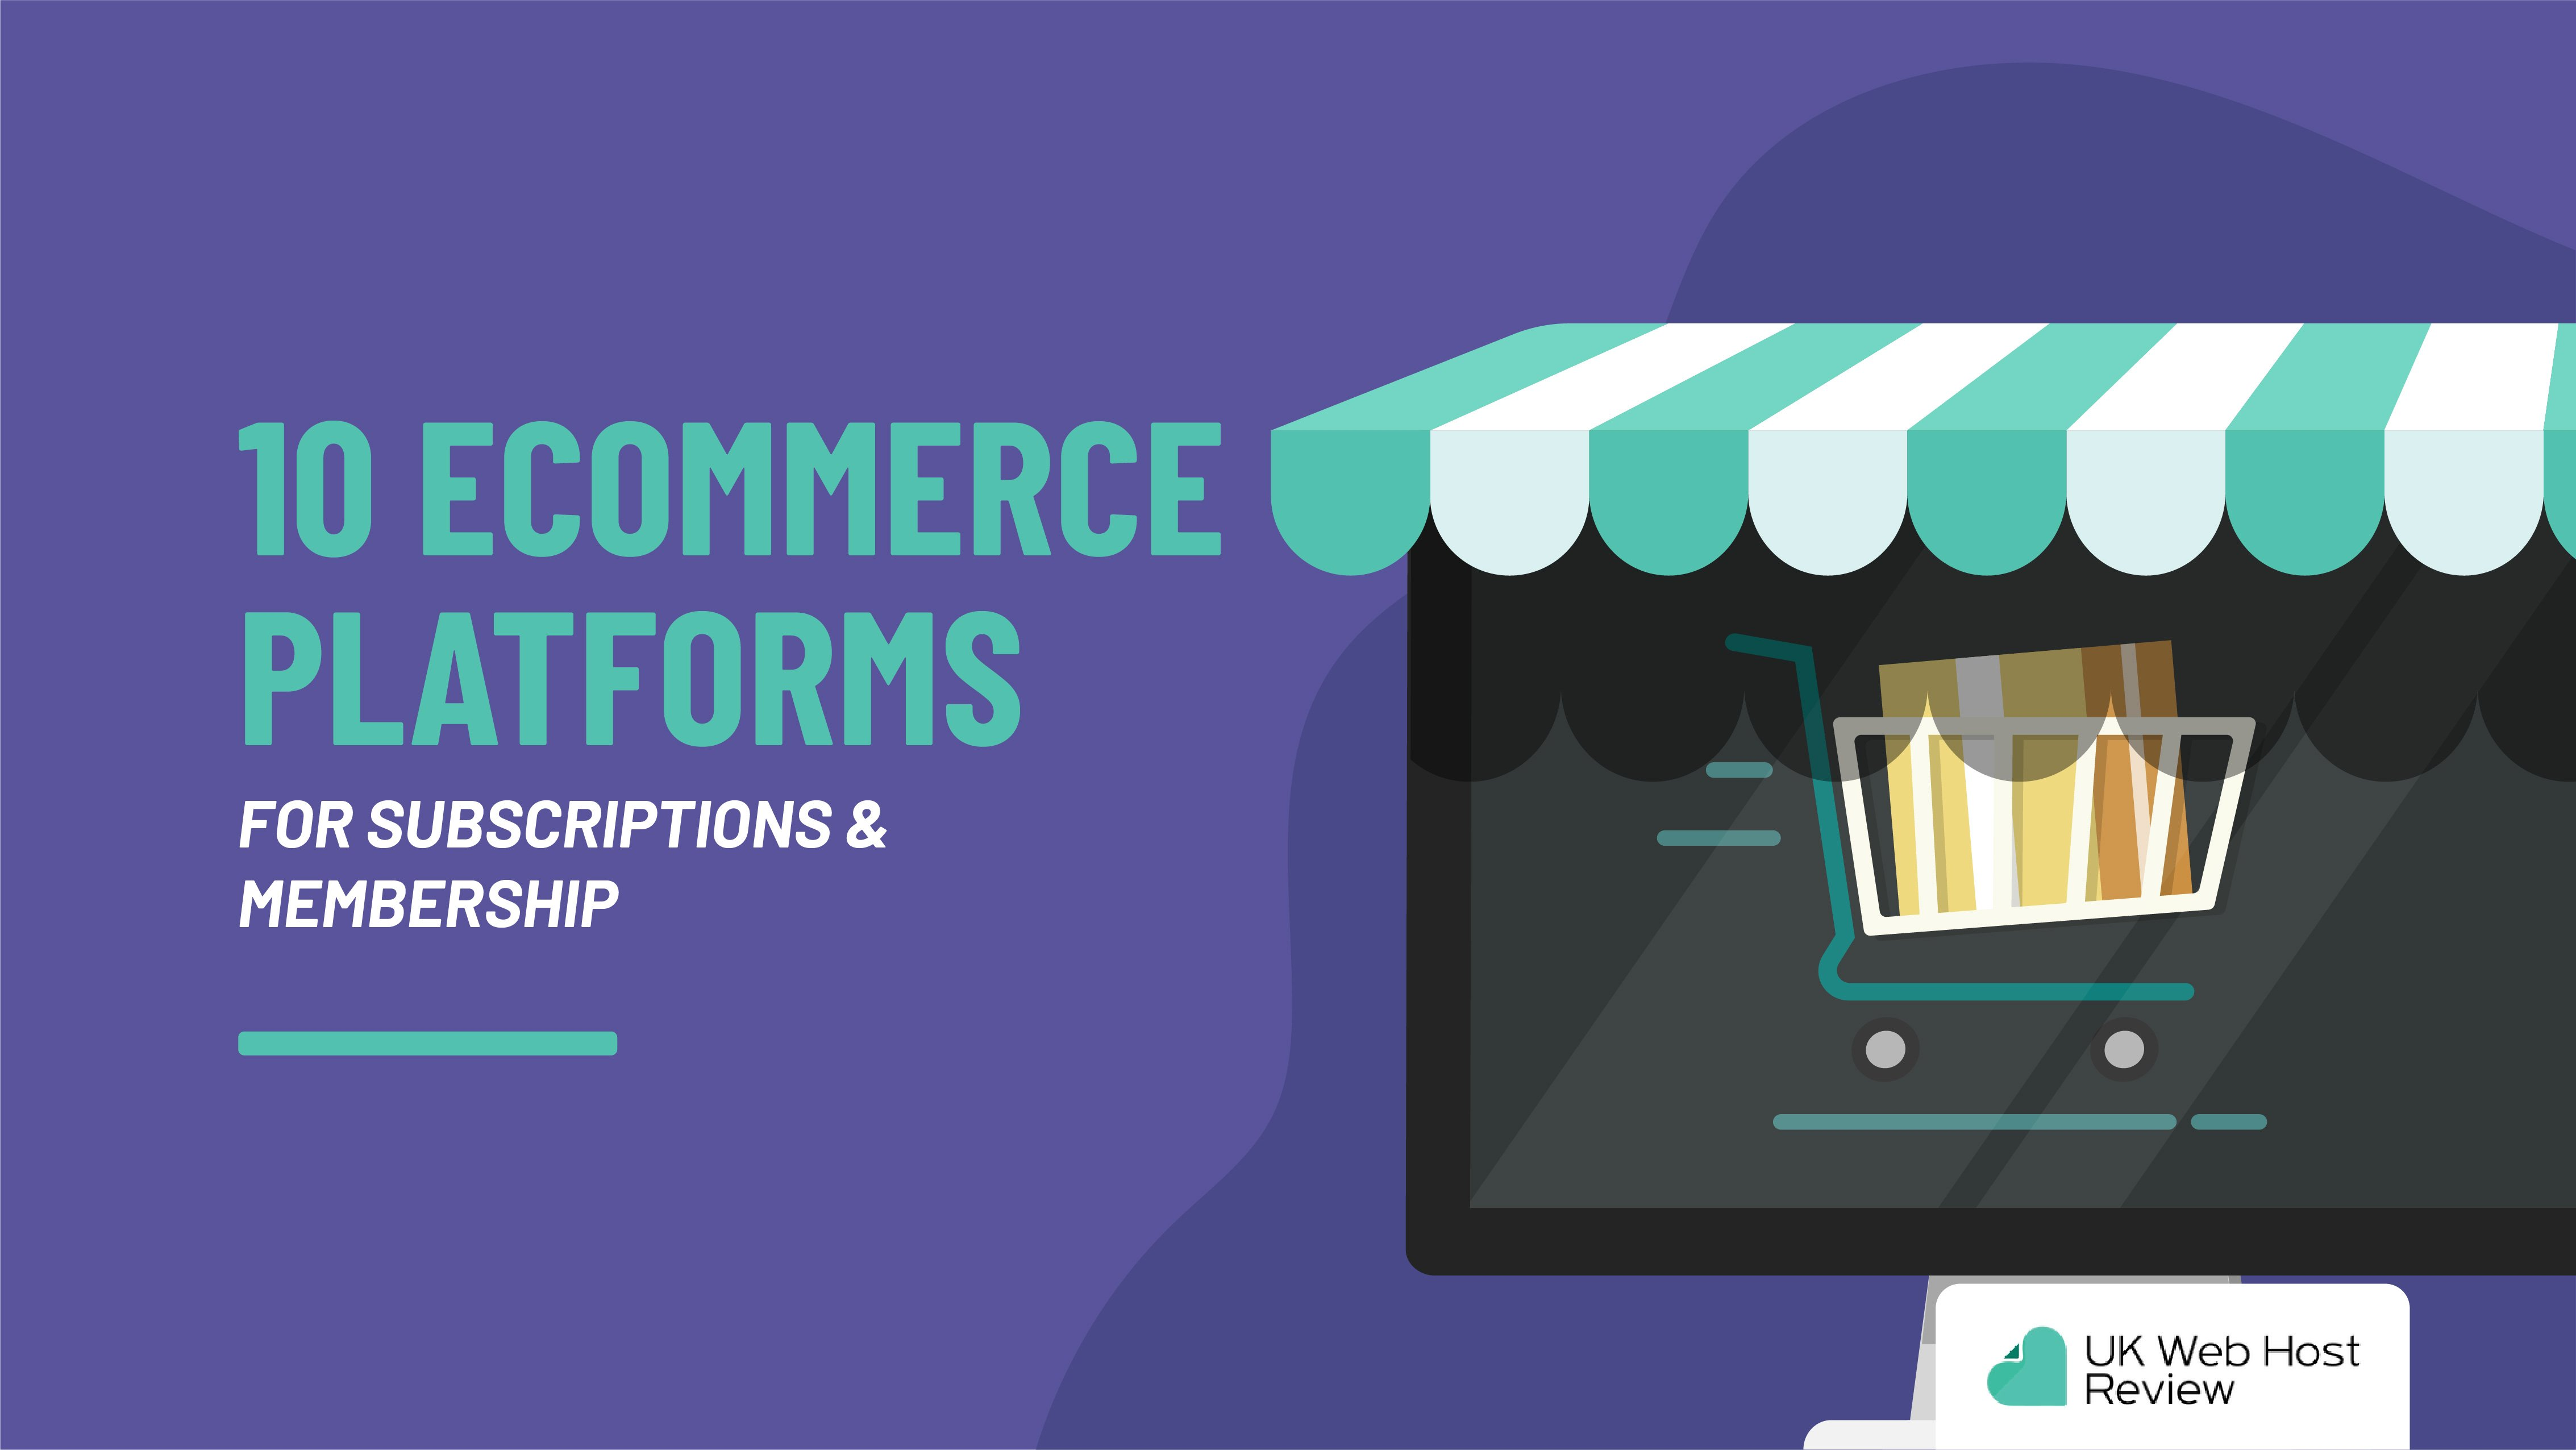 10 eCommerce Platforms for Subscriptions & Membership